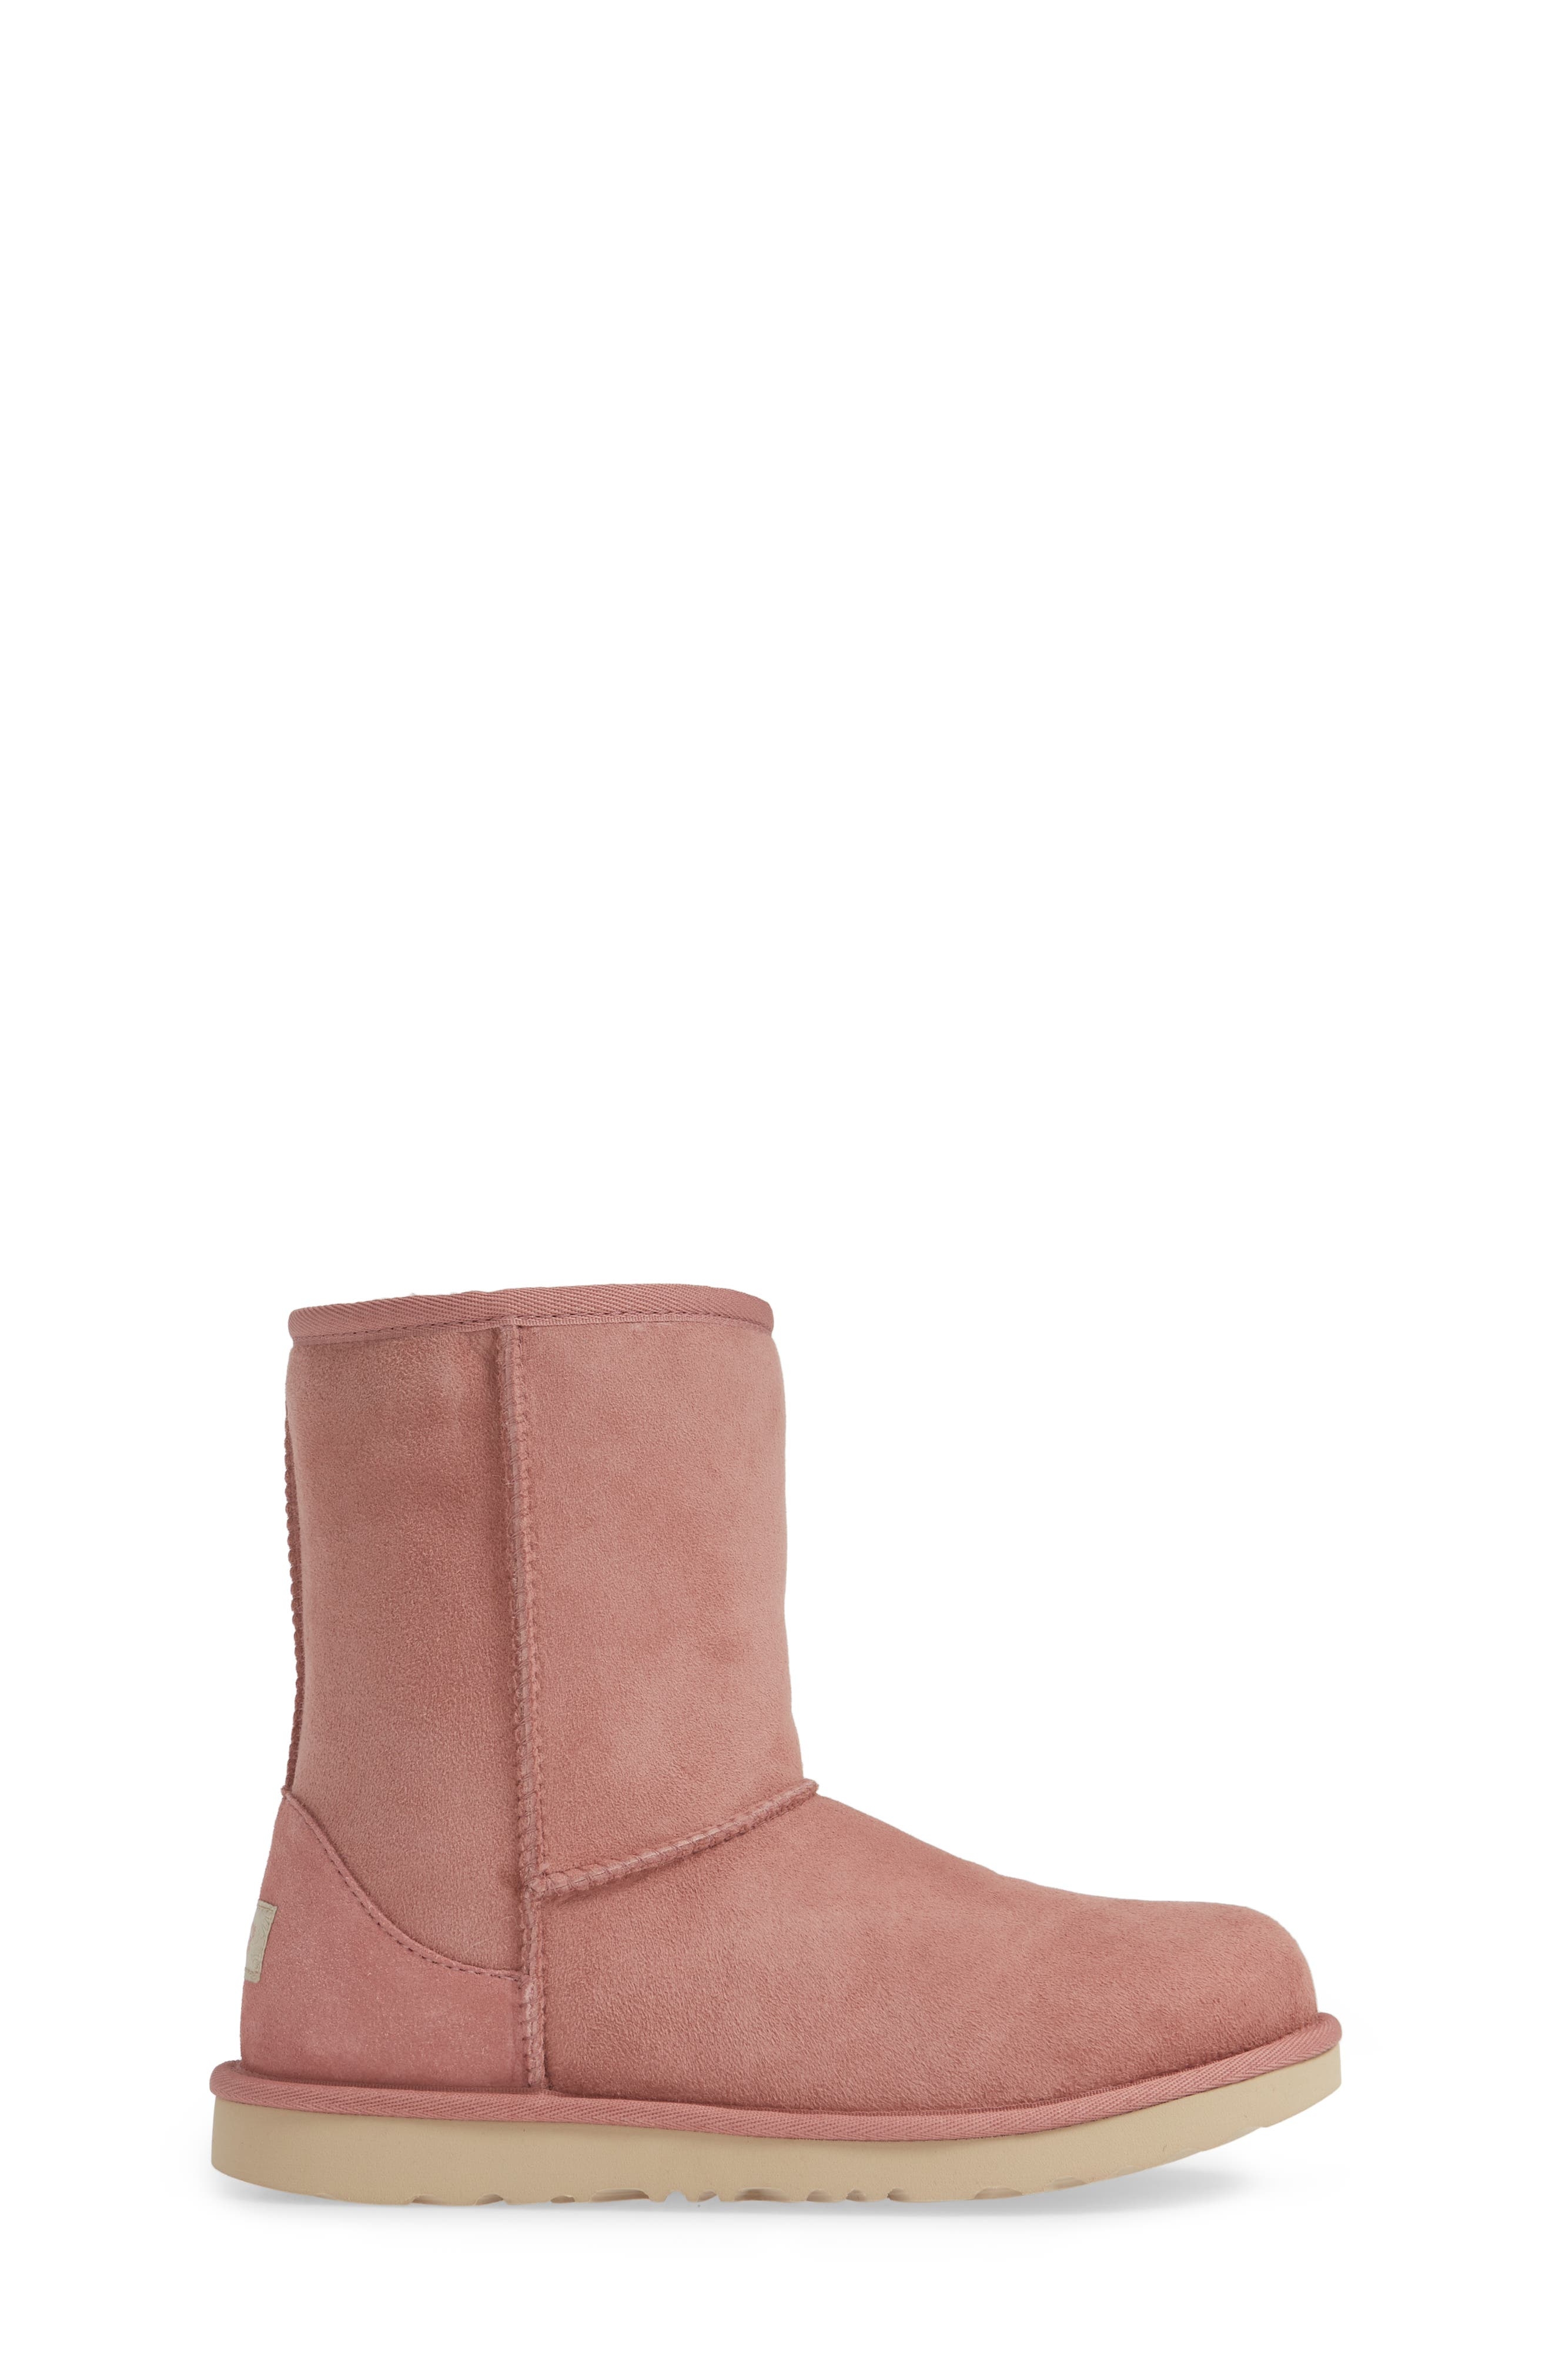 Classic Short II Water Resistant Genuine Shearling Boot,                             Alternate thumbnail 3, color,                             PINK DAWN